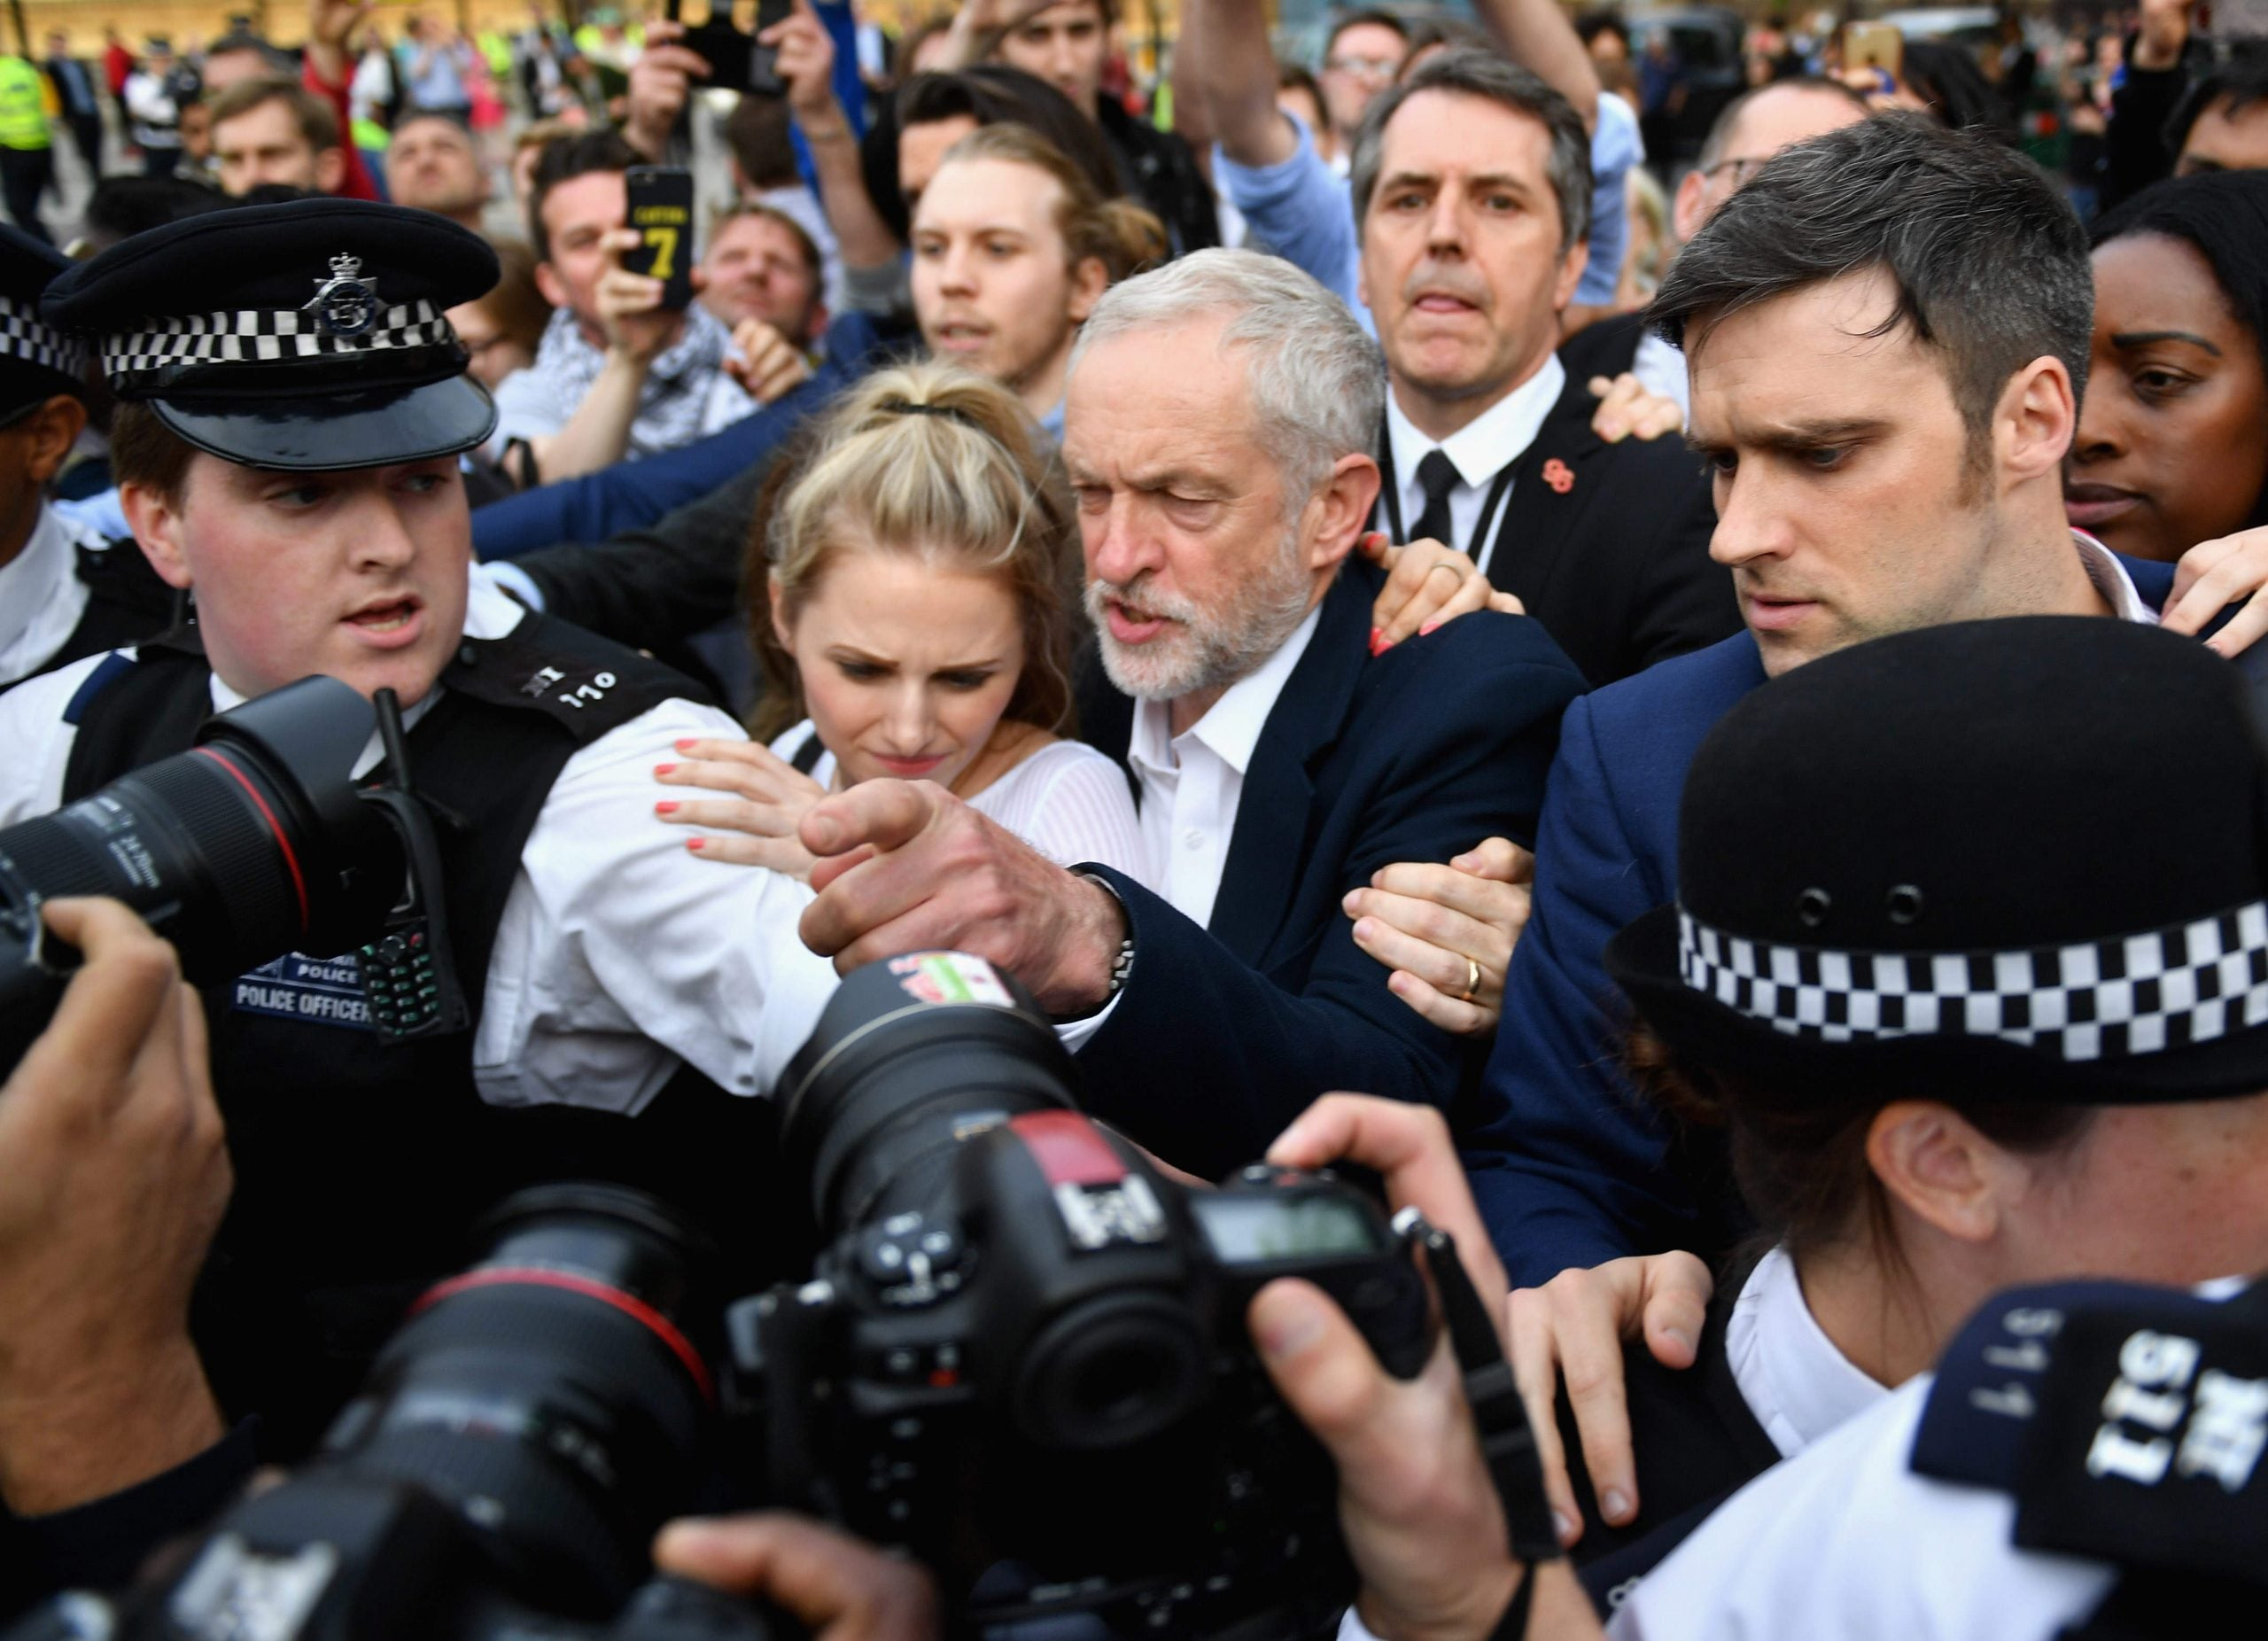 It is time for the hard truth about Jeremy Corbyn and the company he keeps